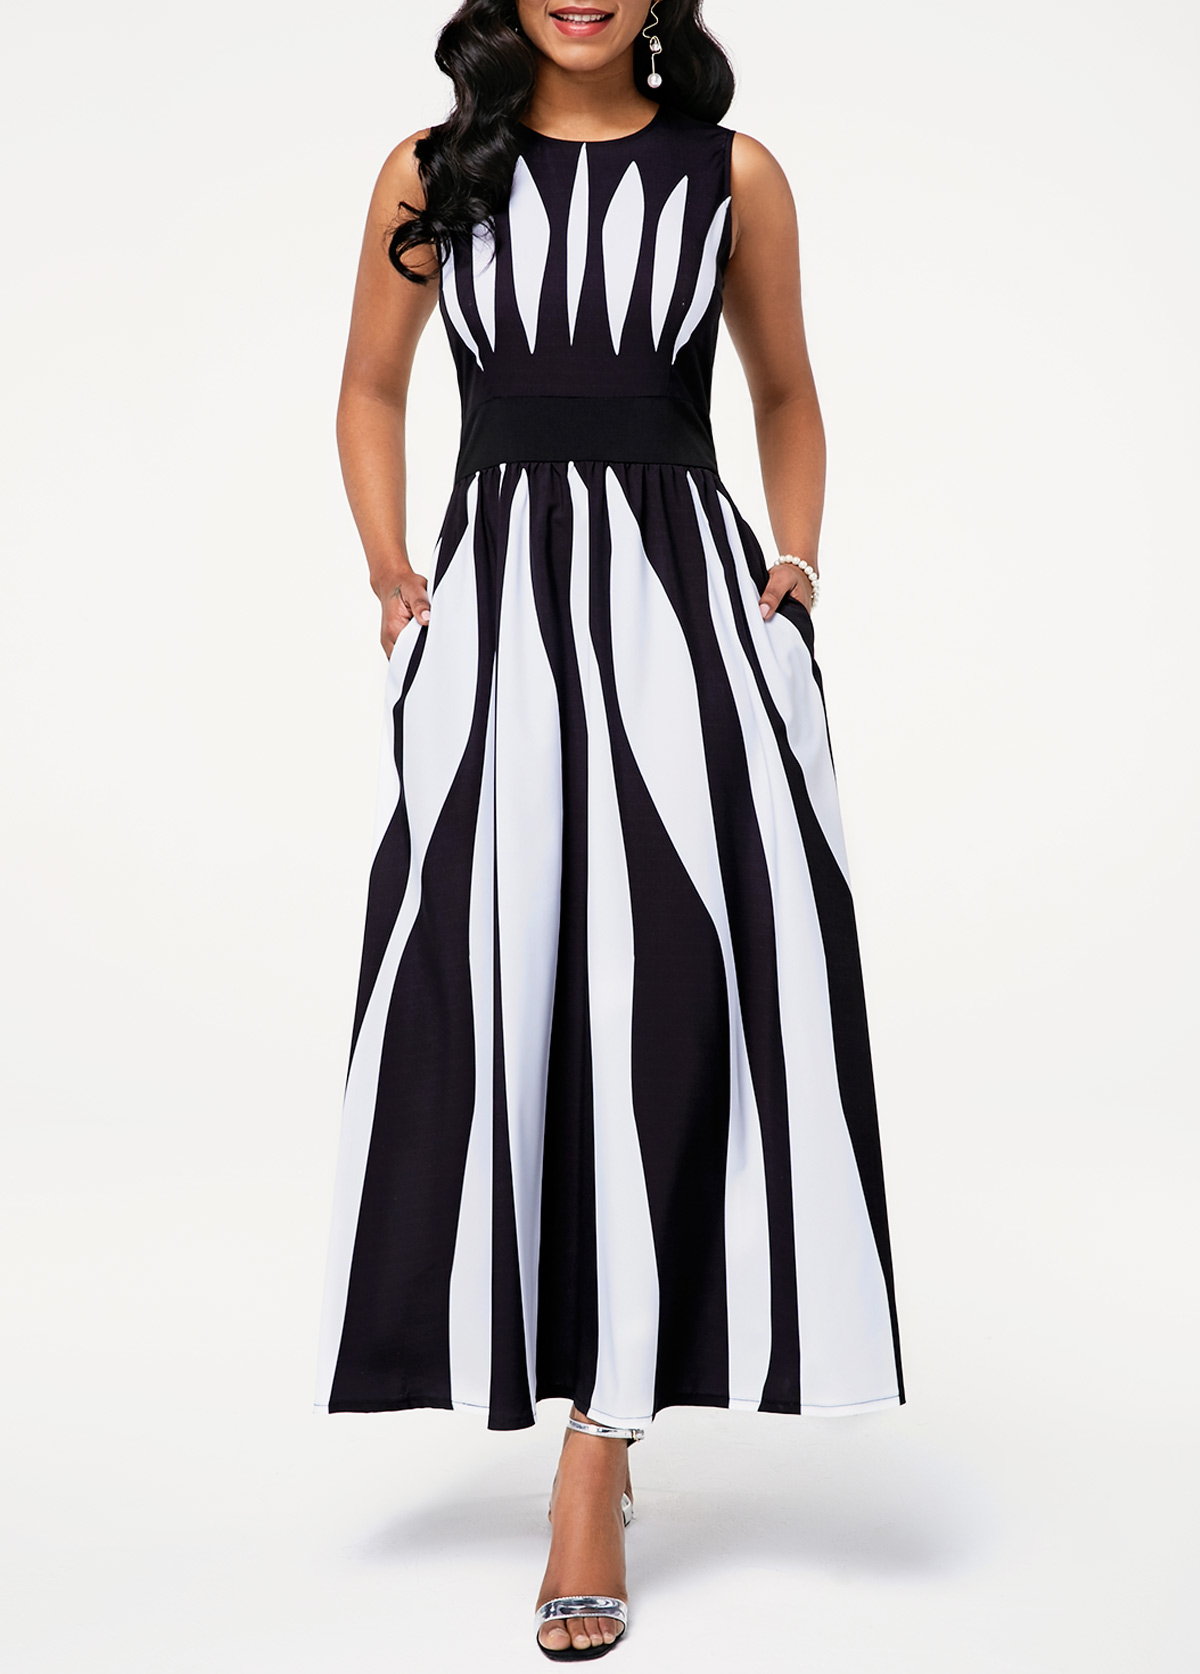 Round Neck Sleeveless Stripe Print Pocket Dress